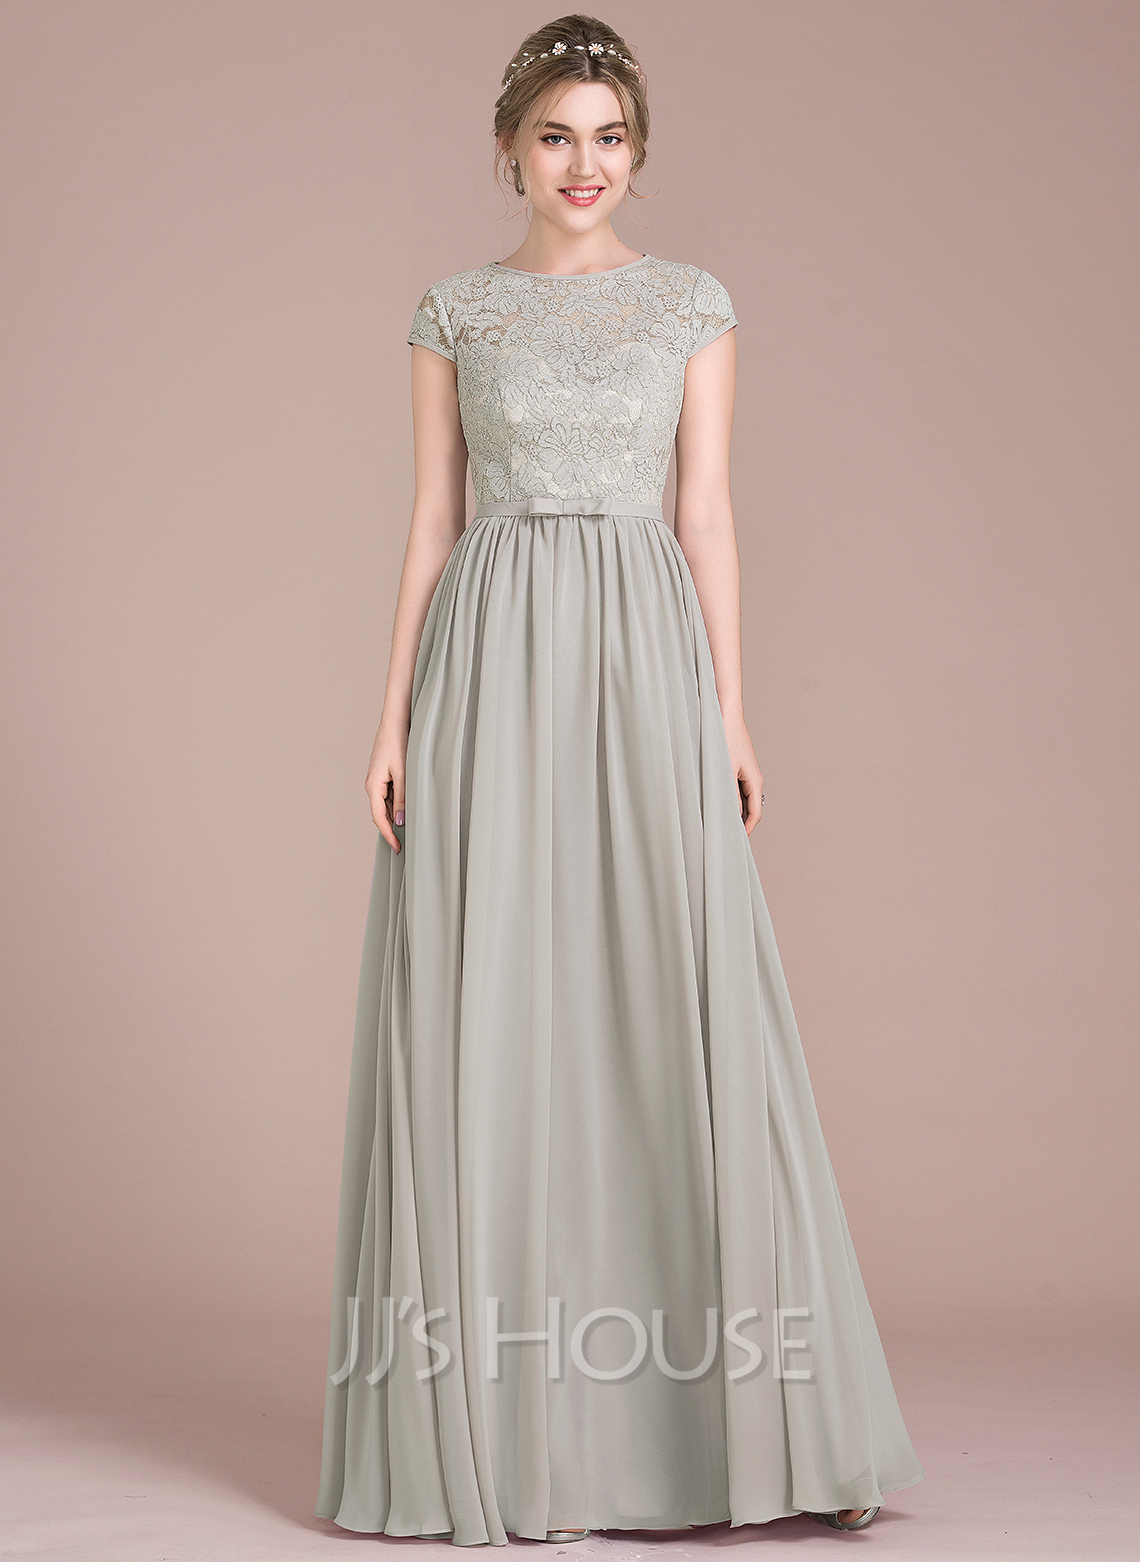 321f9e027e8 A-Line/Princess Scoop Neck Floor-Length Chiffon Lace Bridesmaid Dress With  Bow. Loading zoom